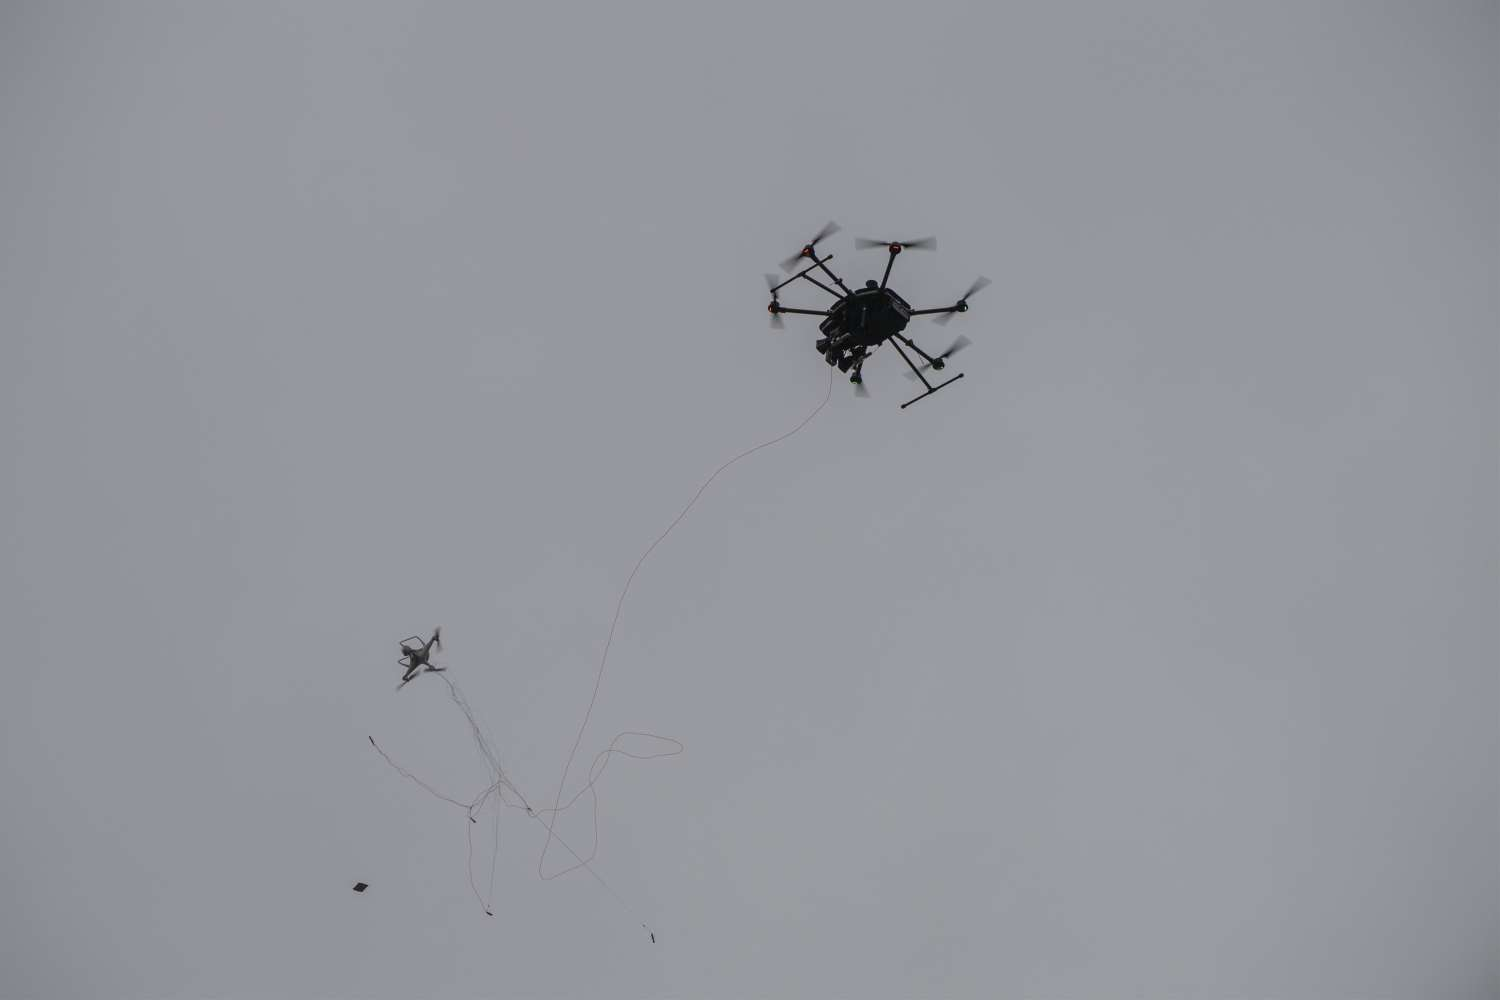 RegulAIR: The integration of drones in the Norwegian and European Airspaces